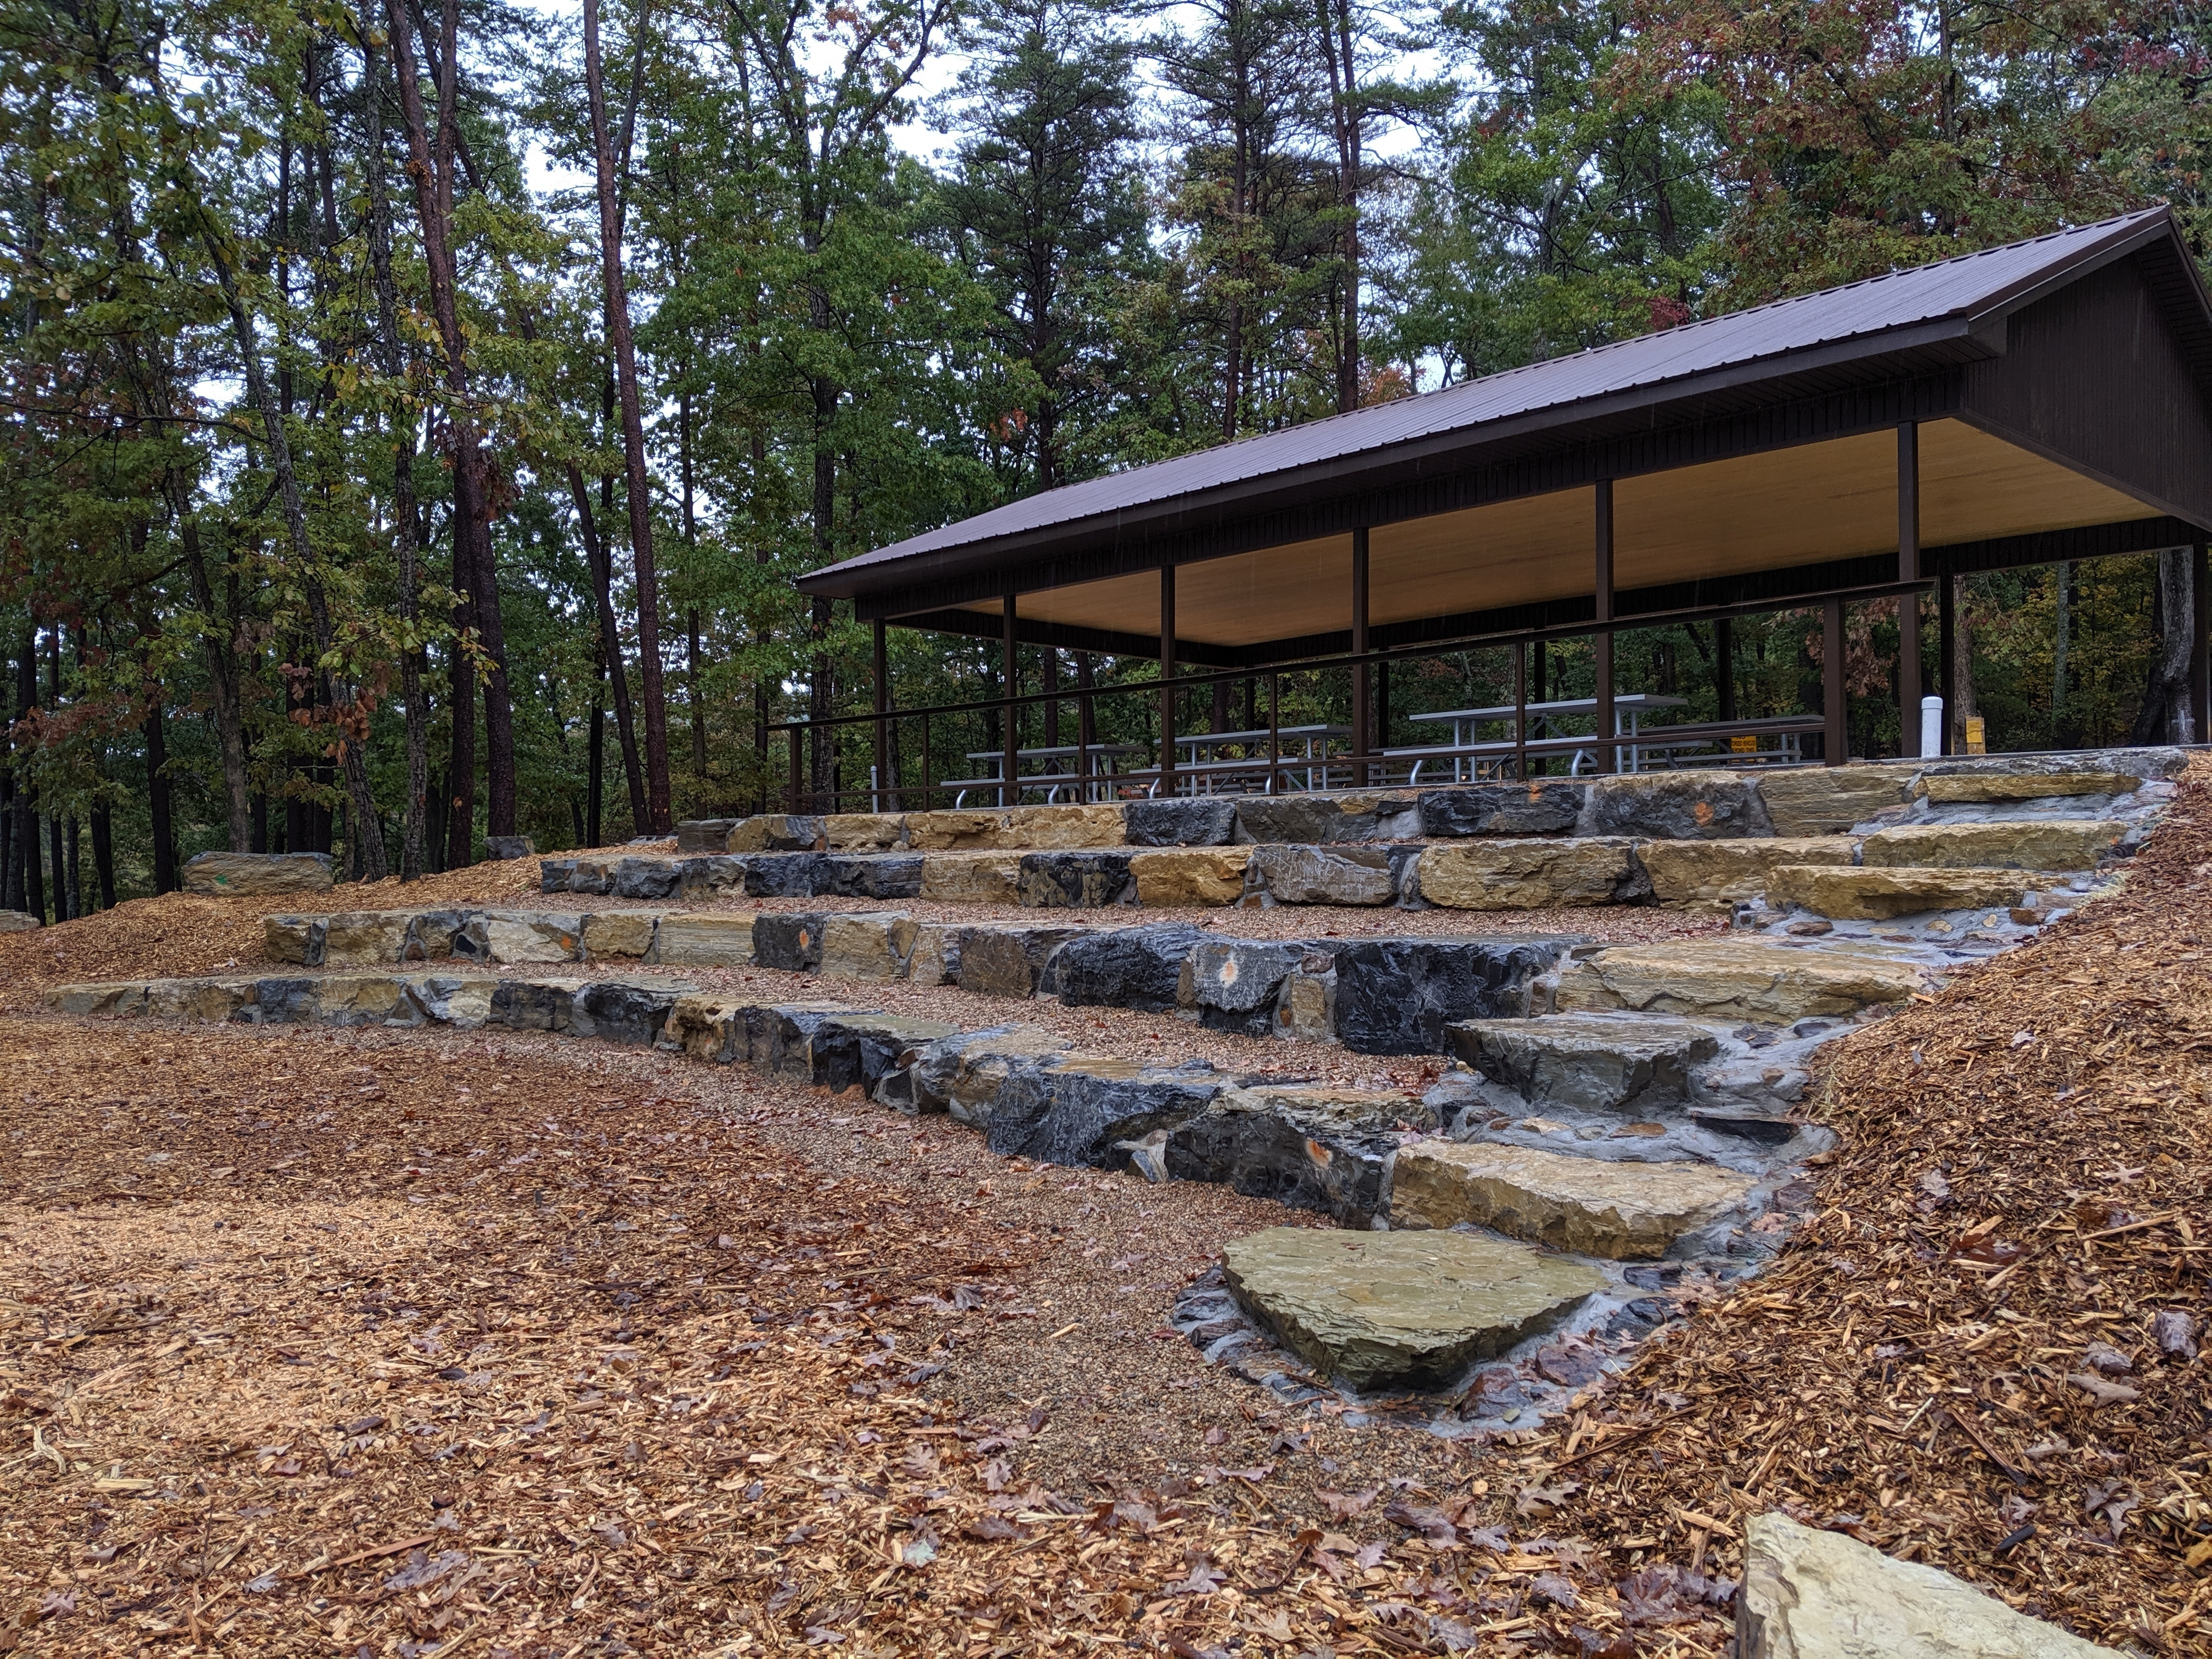 ADA accessible large picnic shelter and amphitheater